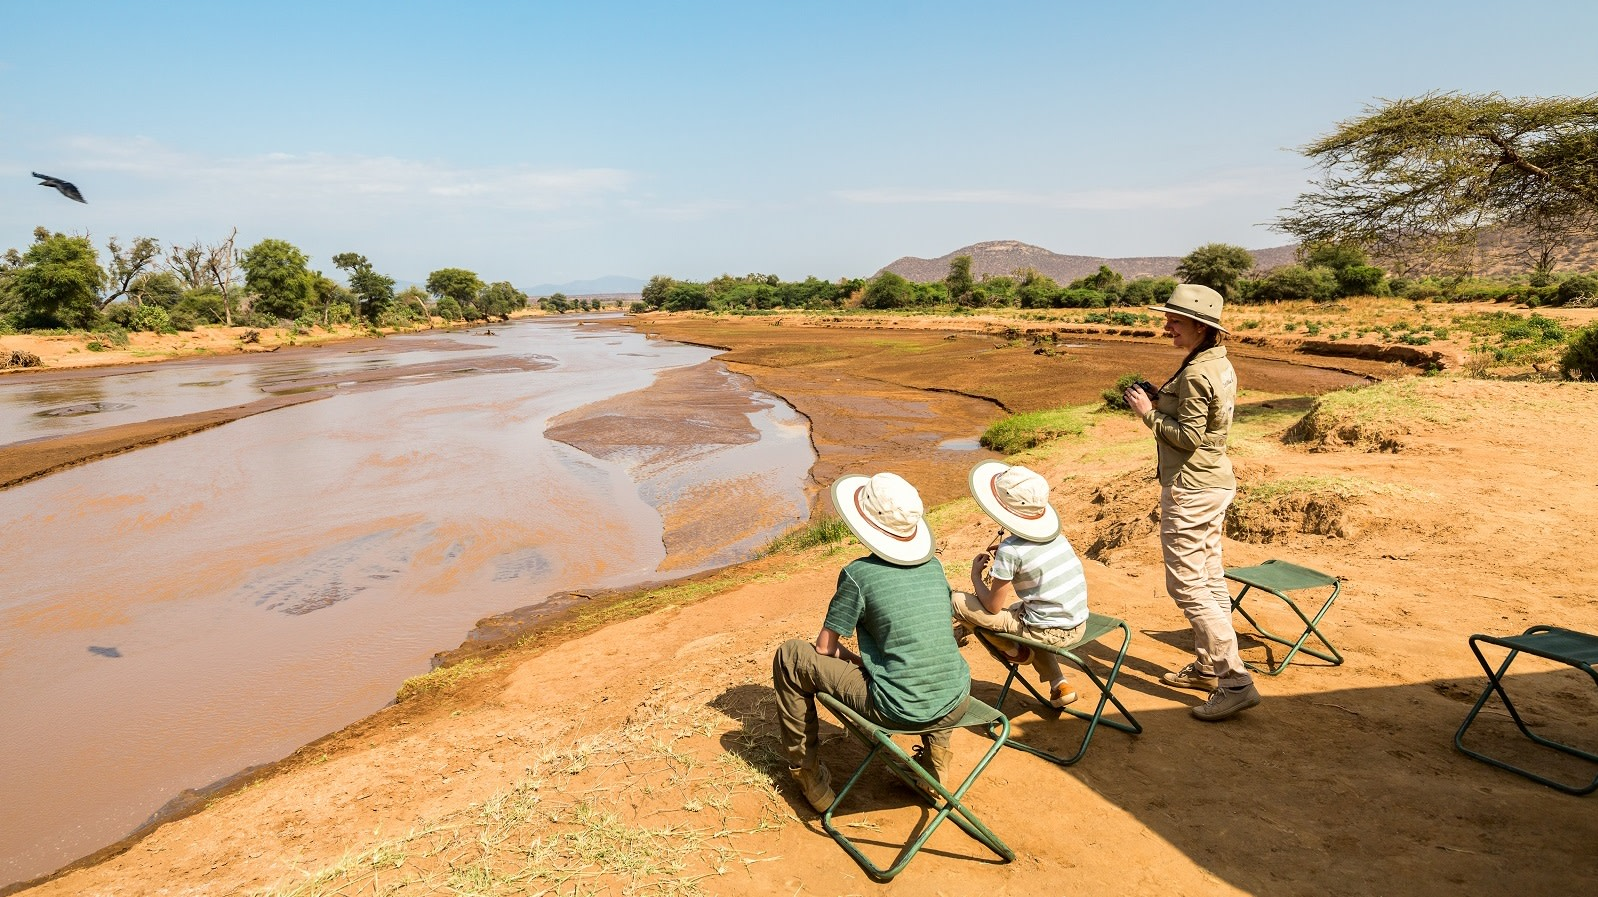 Ewasi Nyiro river in Samburu